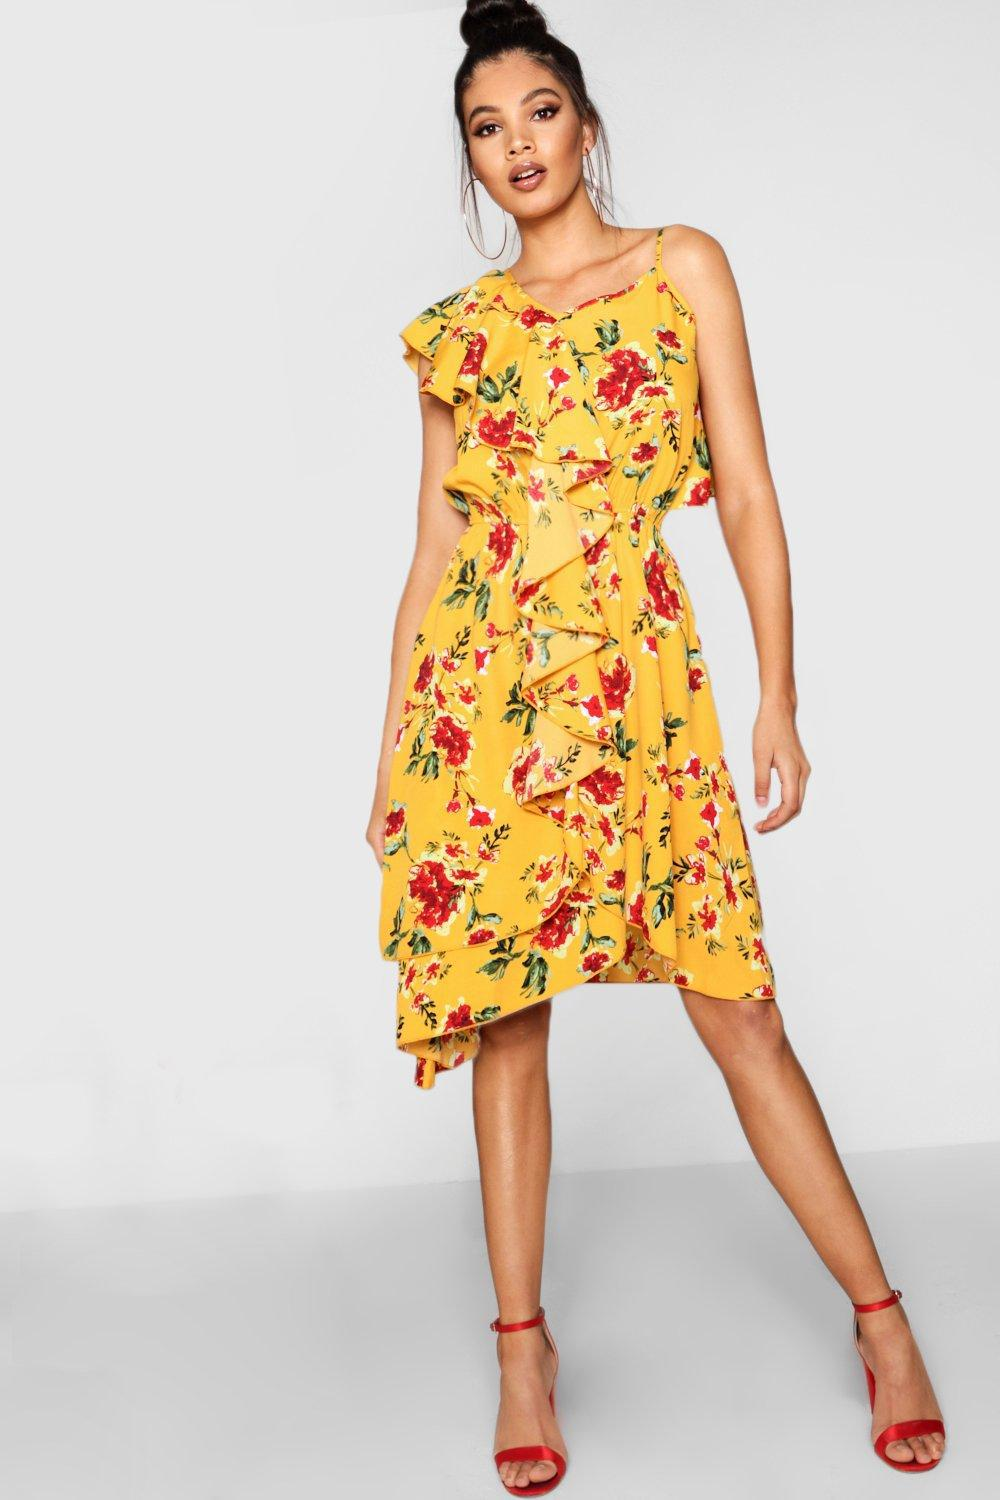 Boohoo Tall Ruffle Detail Woven Tea Dress Sneakernews Cheap Price Clearance Popular Latest Collections Cheap Price BpGJ0